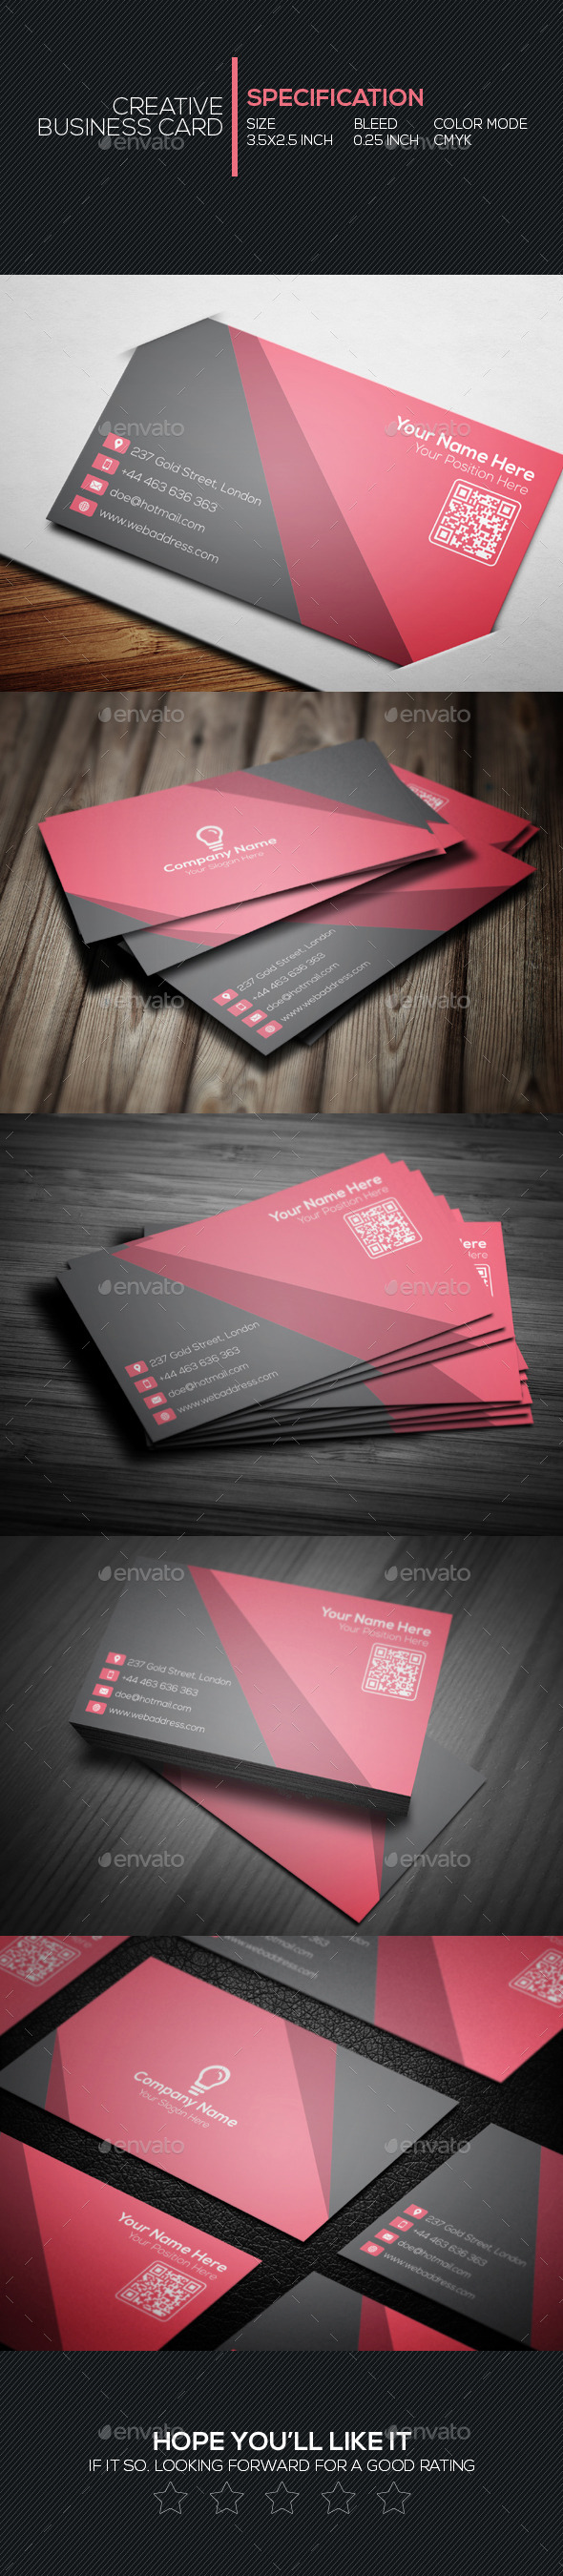 GraphicRiver Creative Business Card 14 11251943